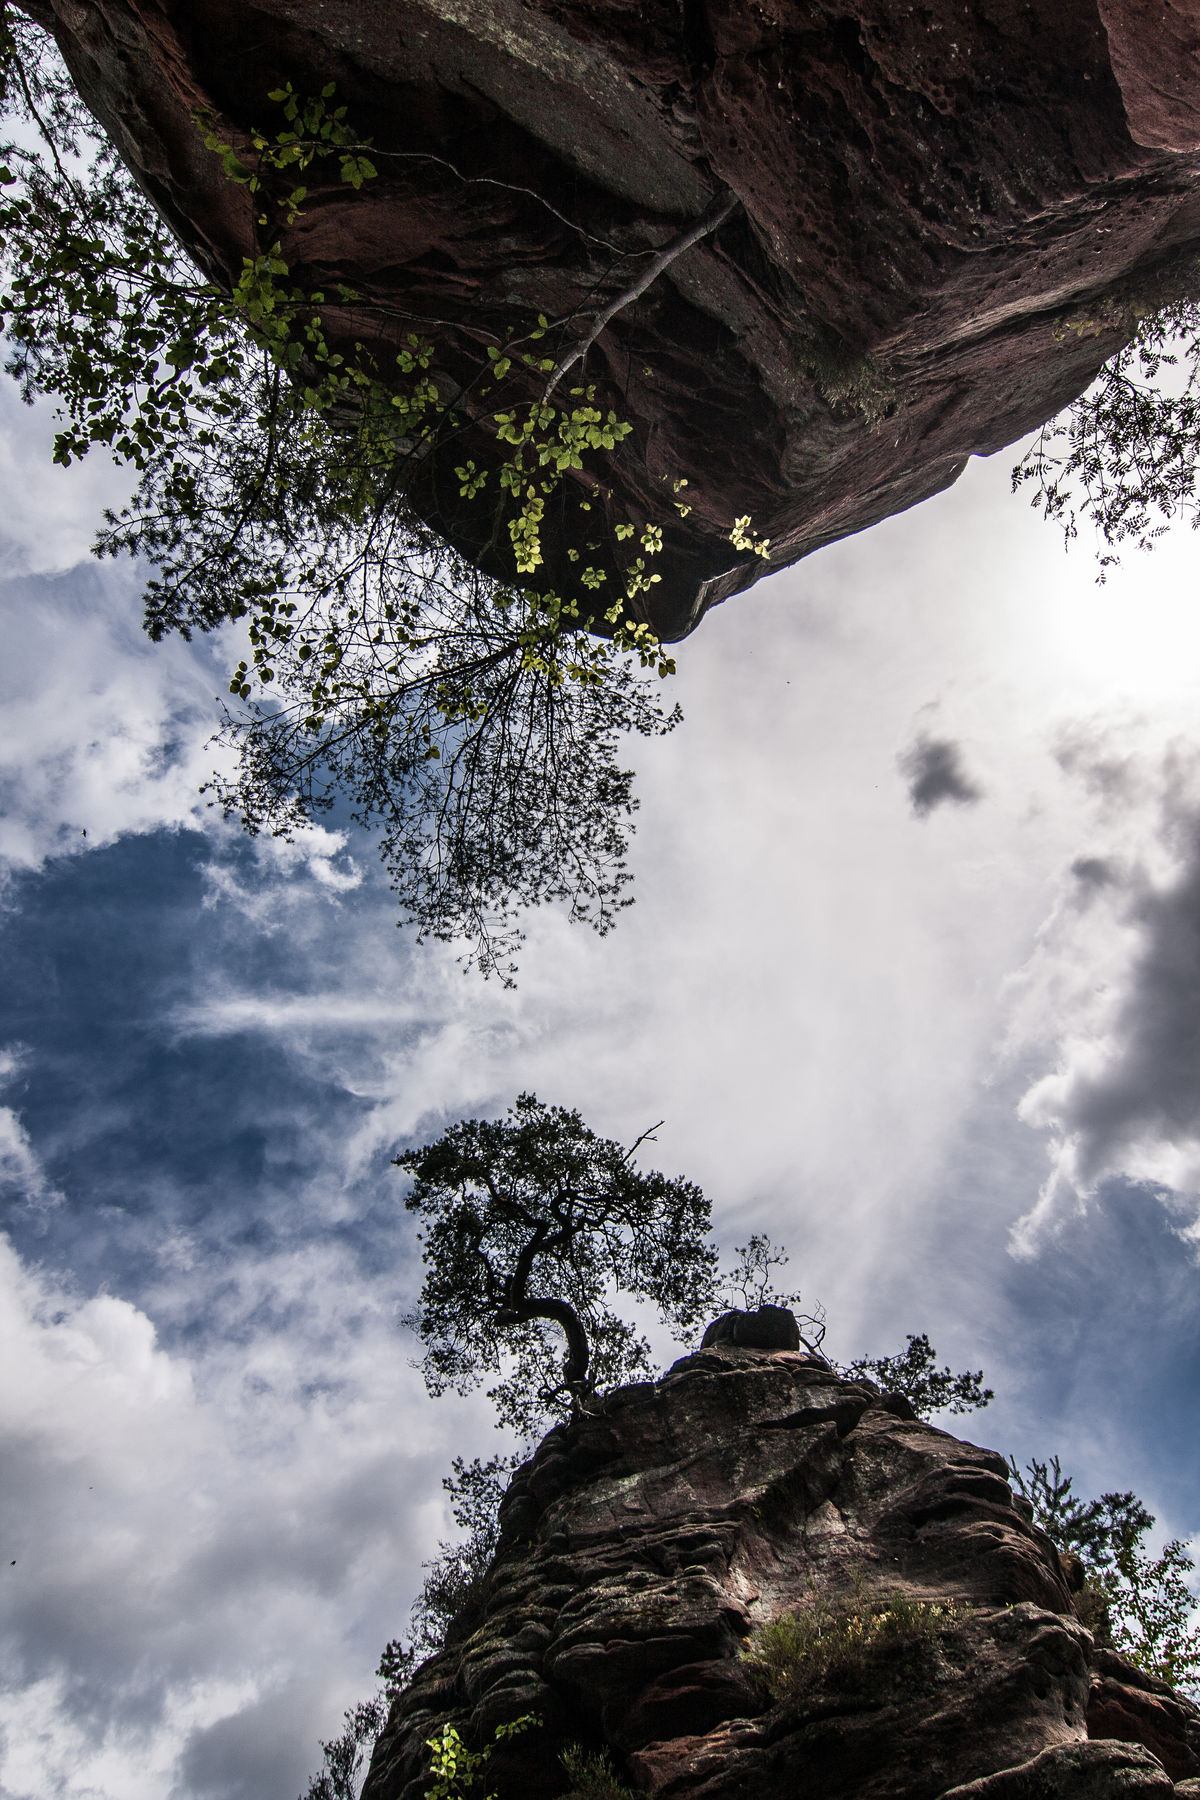 Pfälzerwald Beauty In Nature Cloud - Sky Dahner Felsenland Day Growth Low Angle View Mountain Nature No People Outdoors Rock - Object Scenics Sky Tranquil Scene Tranquility Tree